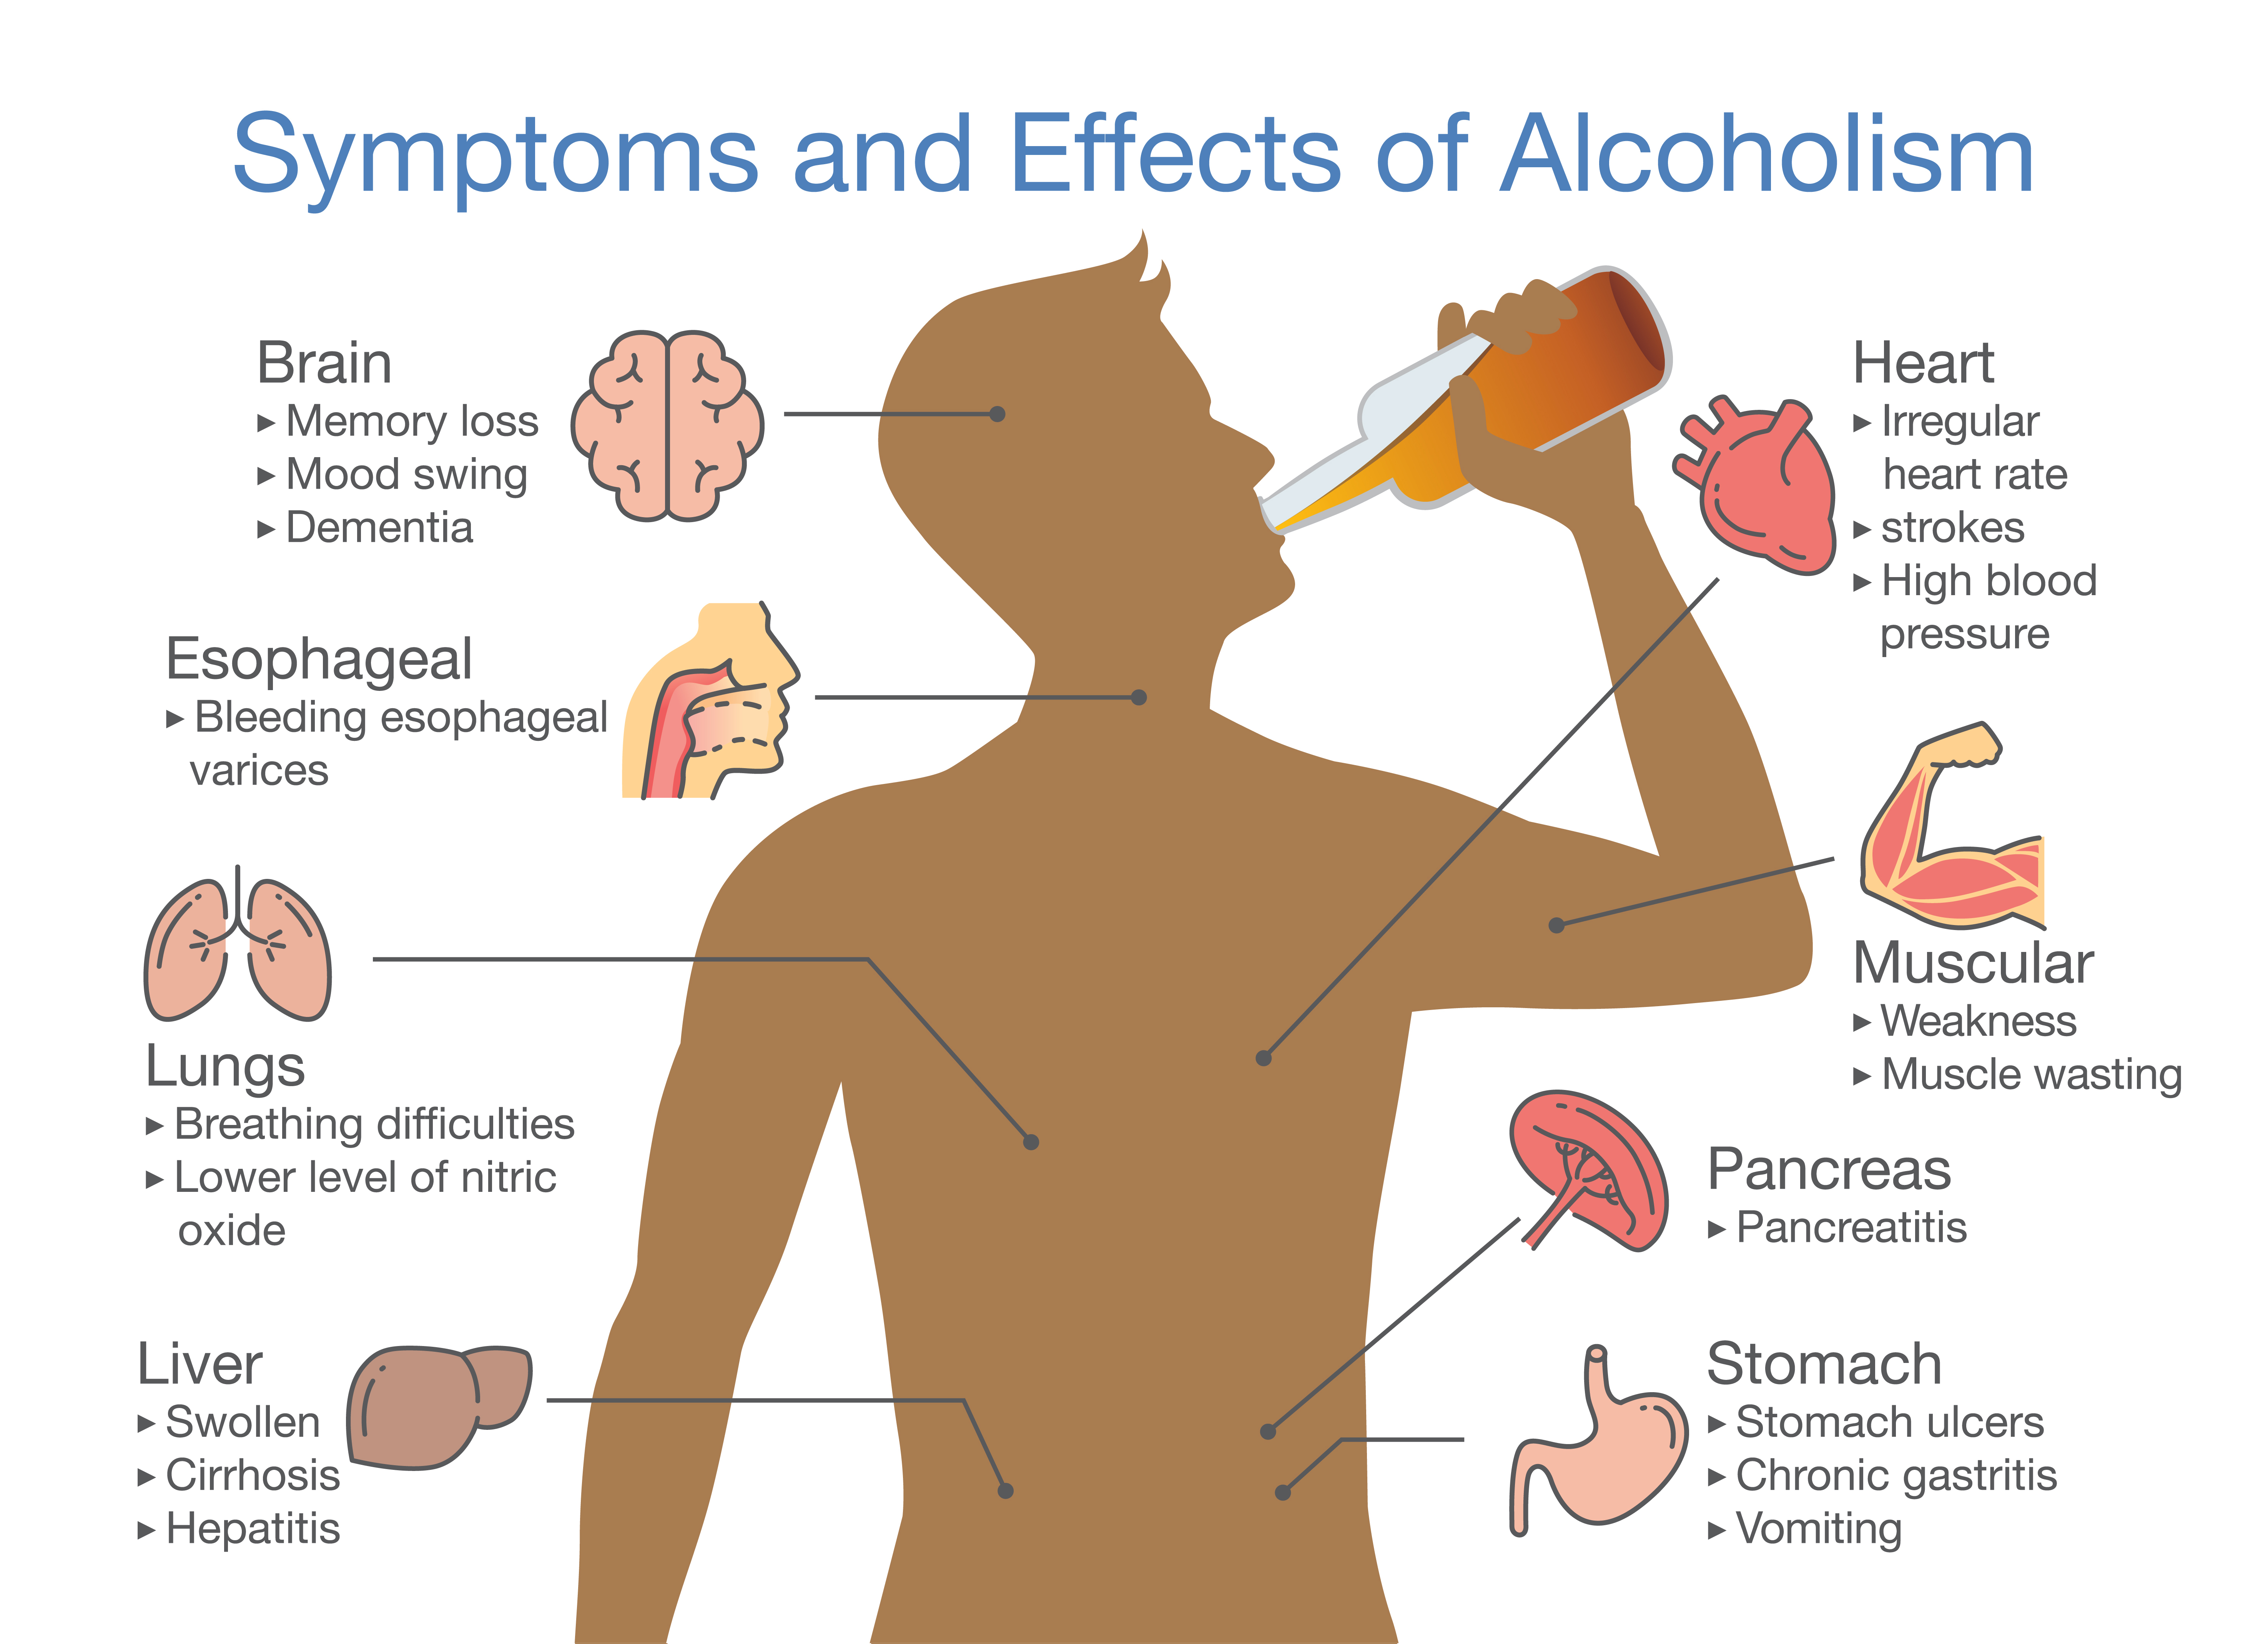 chart showing effects and symptoms of alcohol use disorder